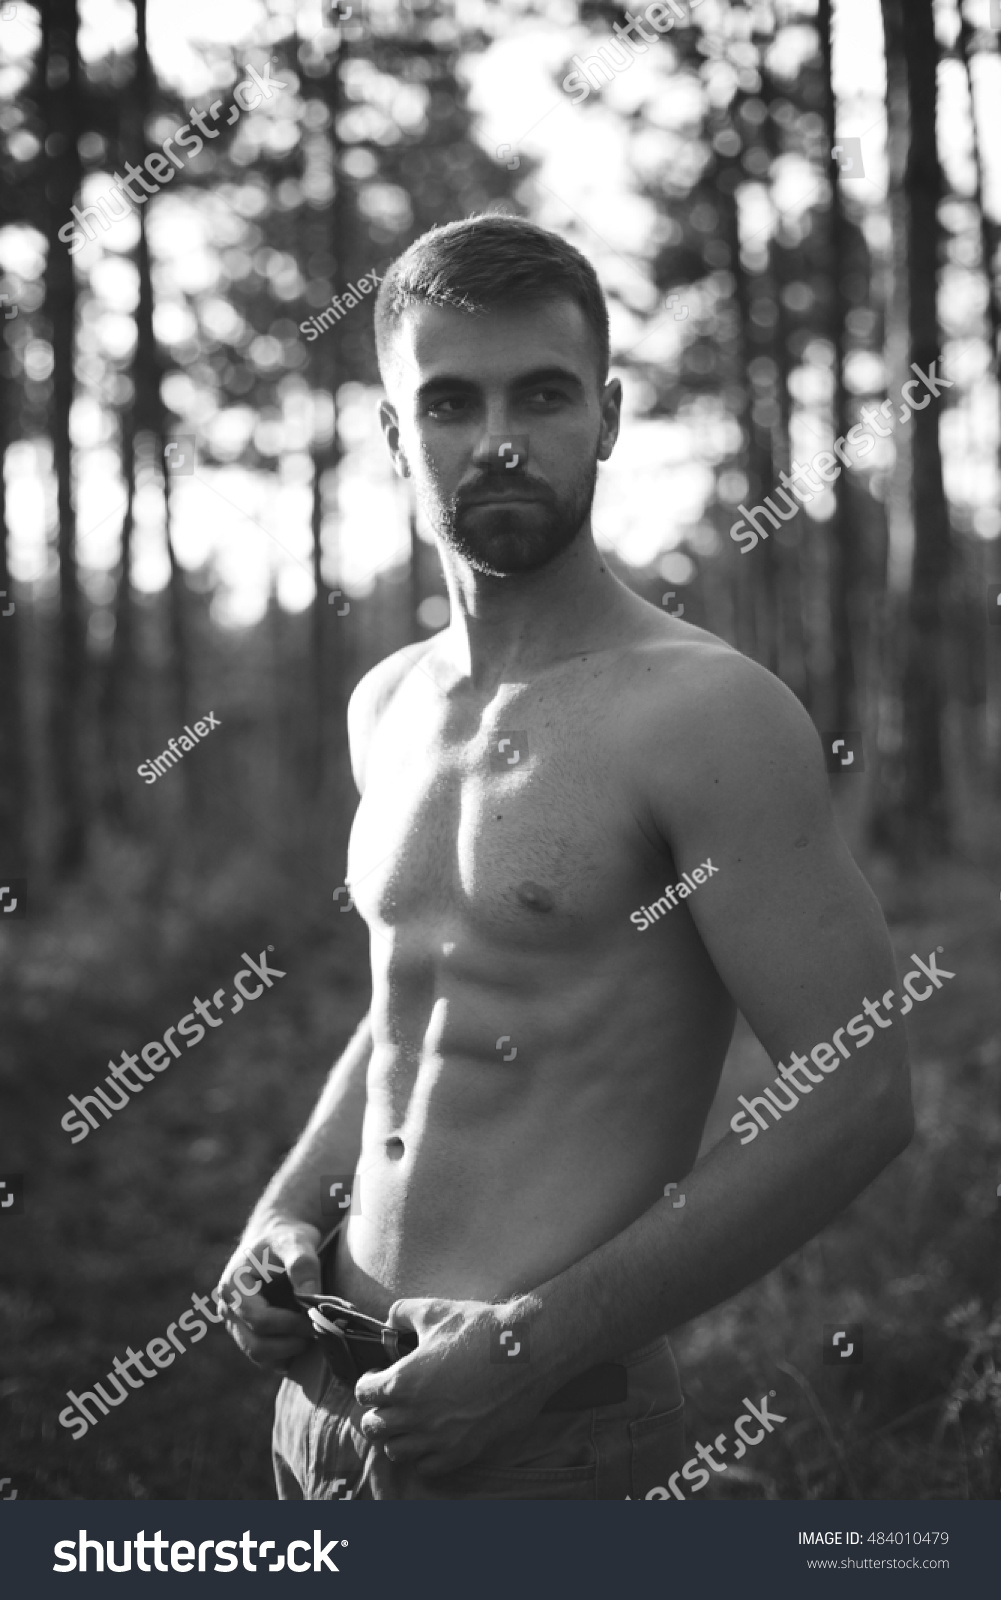 Black and white portrait of a beautiful shirtless man in jeans in natural outdoor setting